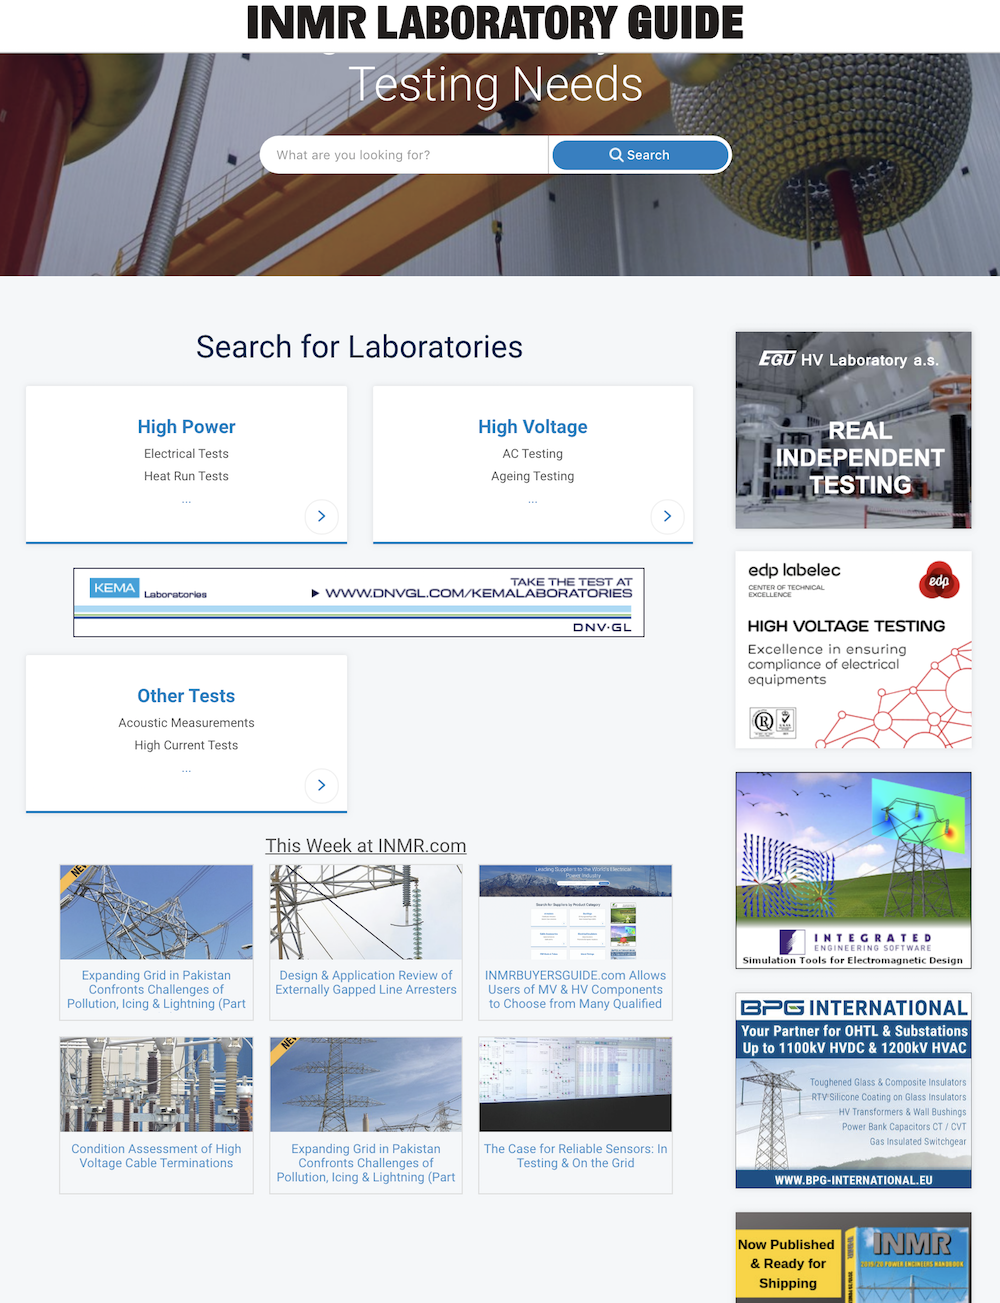 www.inmrlaboratoryguide.com Helps Manufacturers & Users of Equipment Select Qualified HV & HP Test Laboratories www